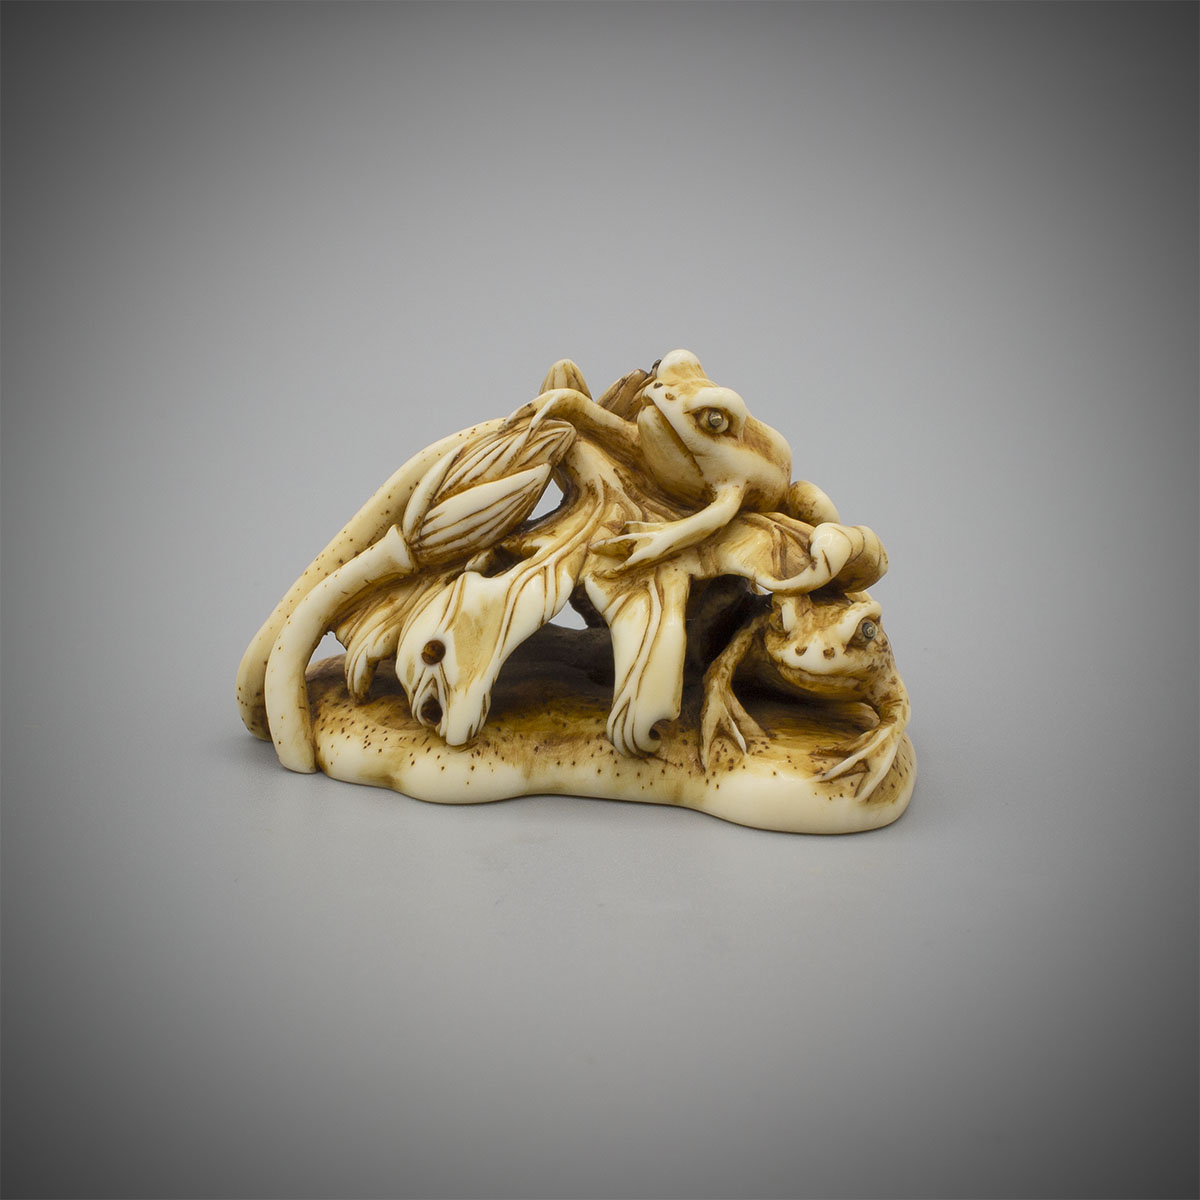 Ivory Netsuke of Two Frogs and Lotus, attributed to Okazaki Rensai, MR3576_v.1